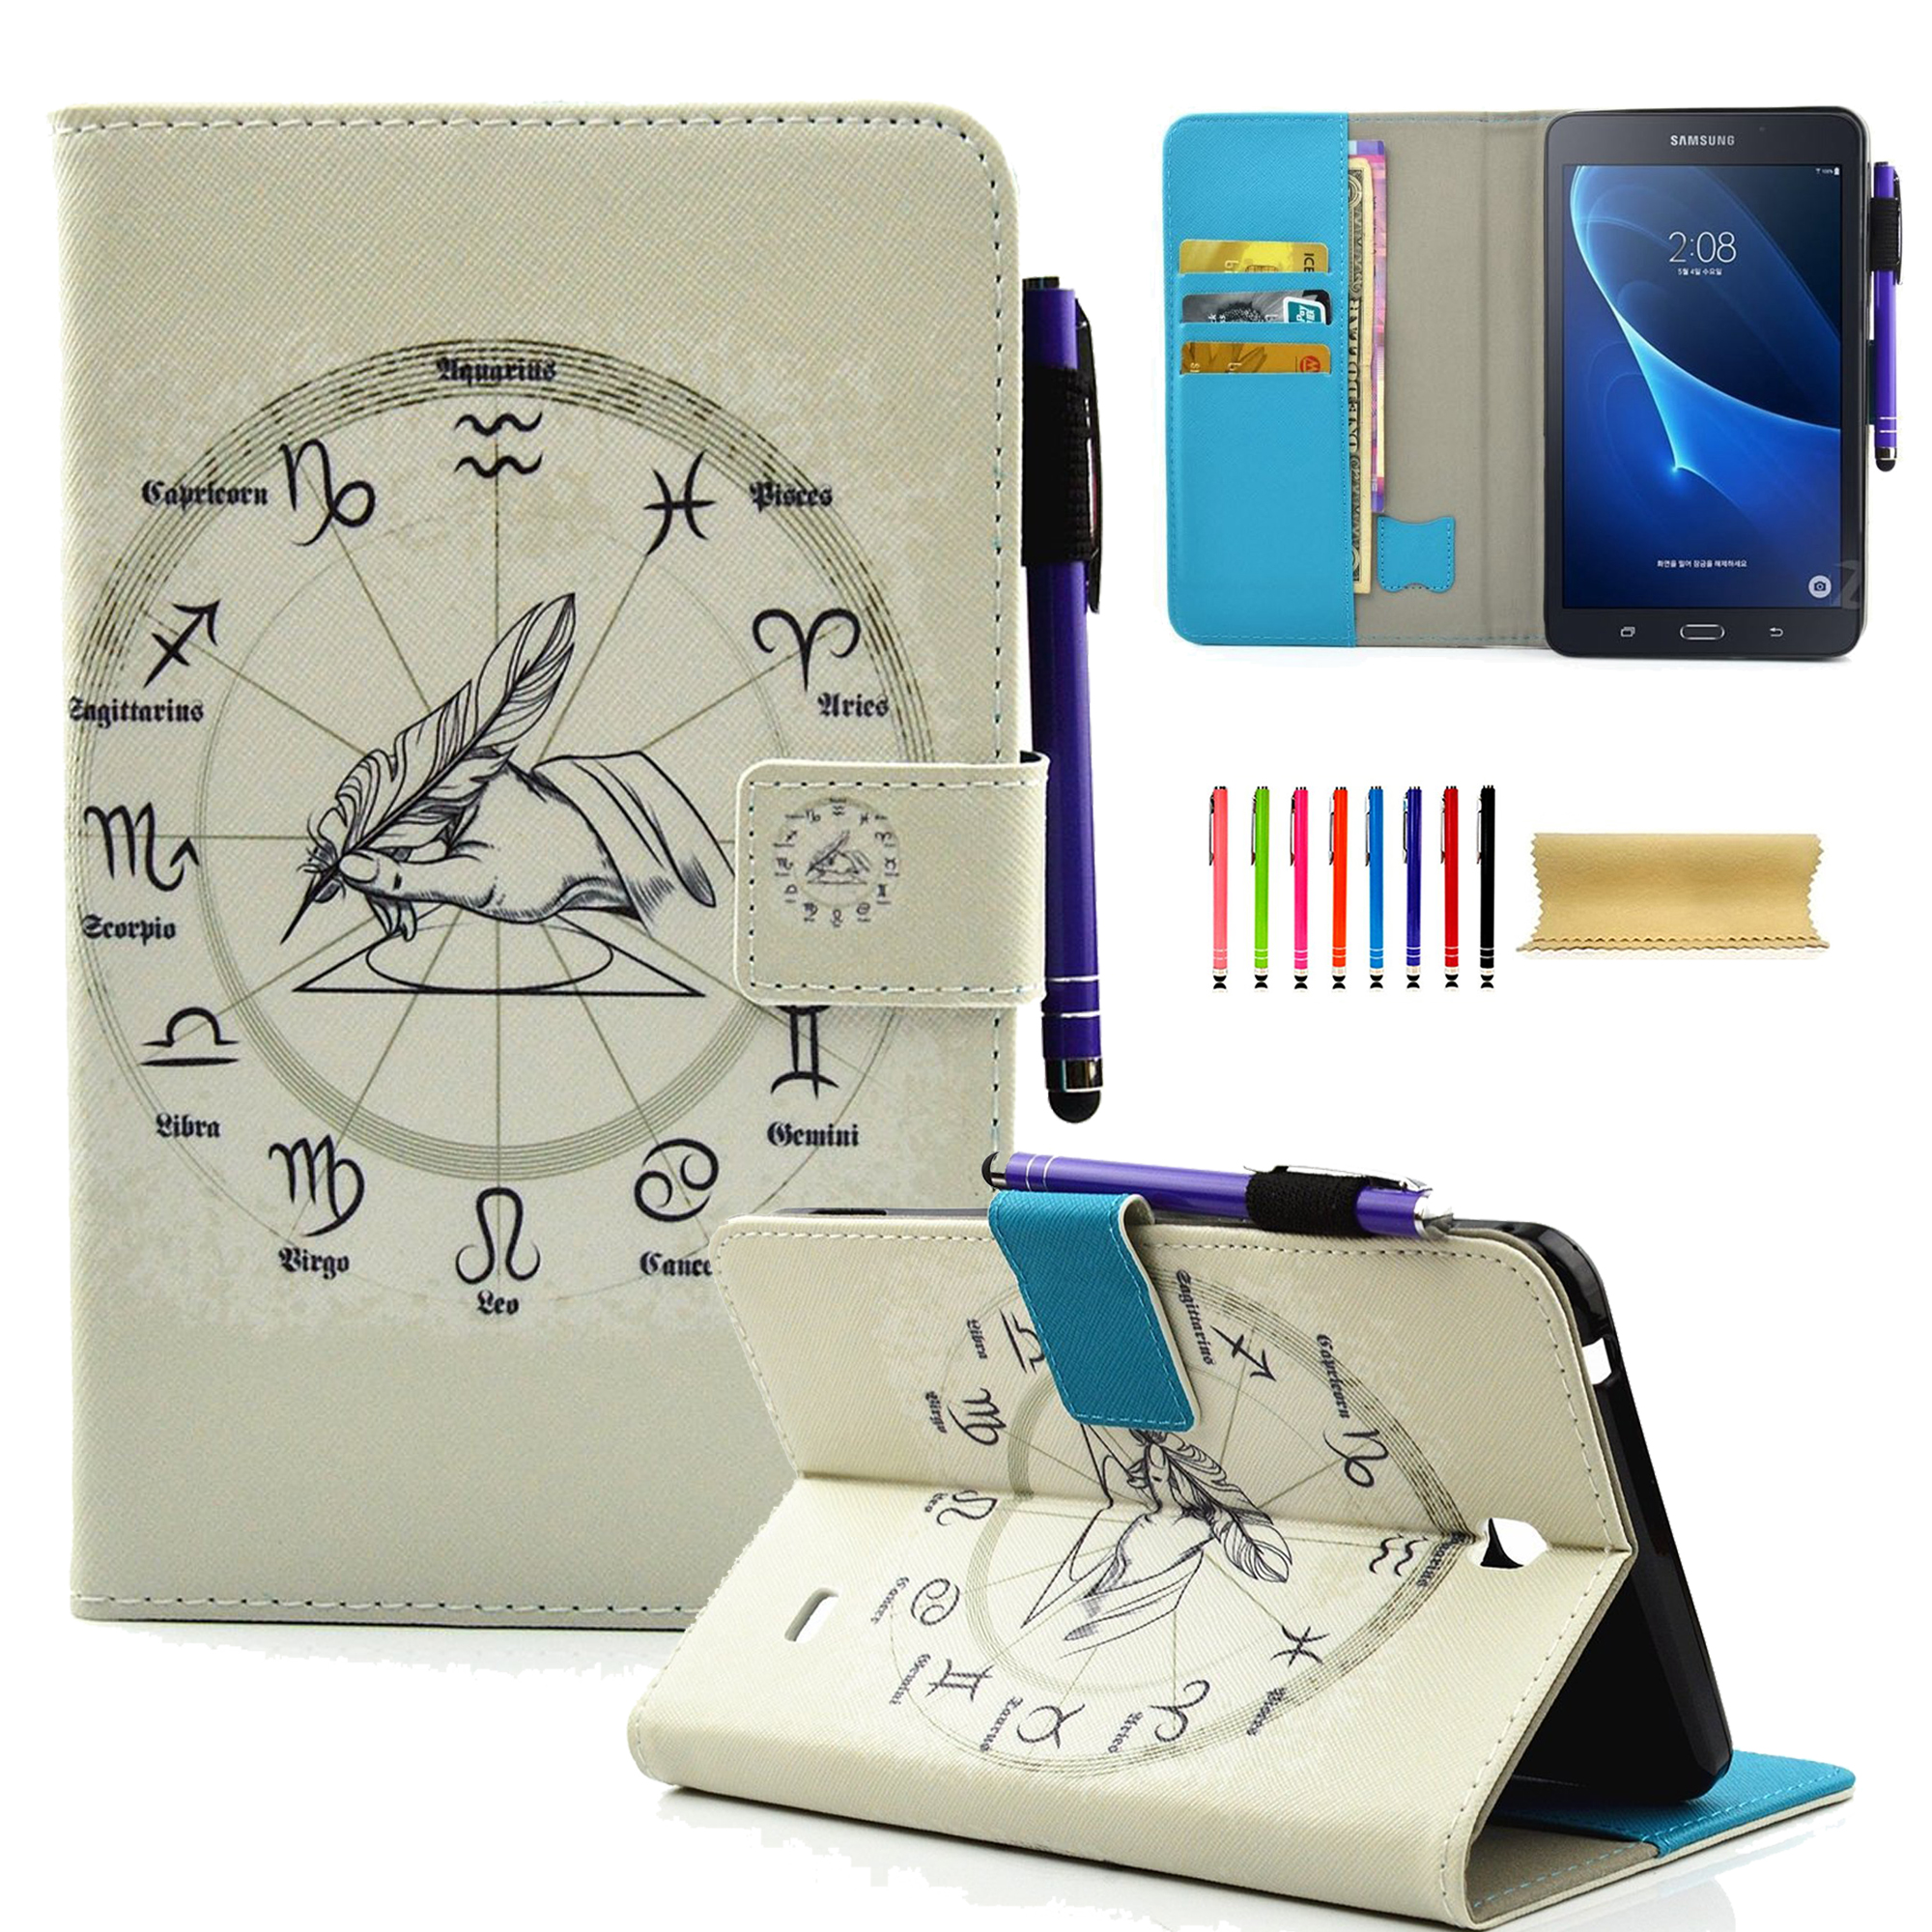 """Galaxy Tab 4 7.0"""" Case, Goodest Smart PU Leather Folio Stand Cover with Auto Wake/Sleep Wallet Case for Samsung Galaxy Tab 4 7.0-inch SM-T230/ T231/ T235 Tablet, 12 Constellations"""